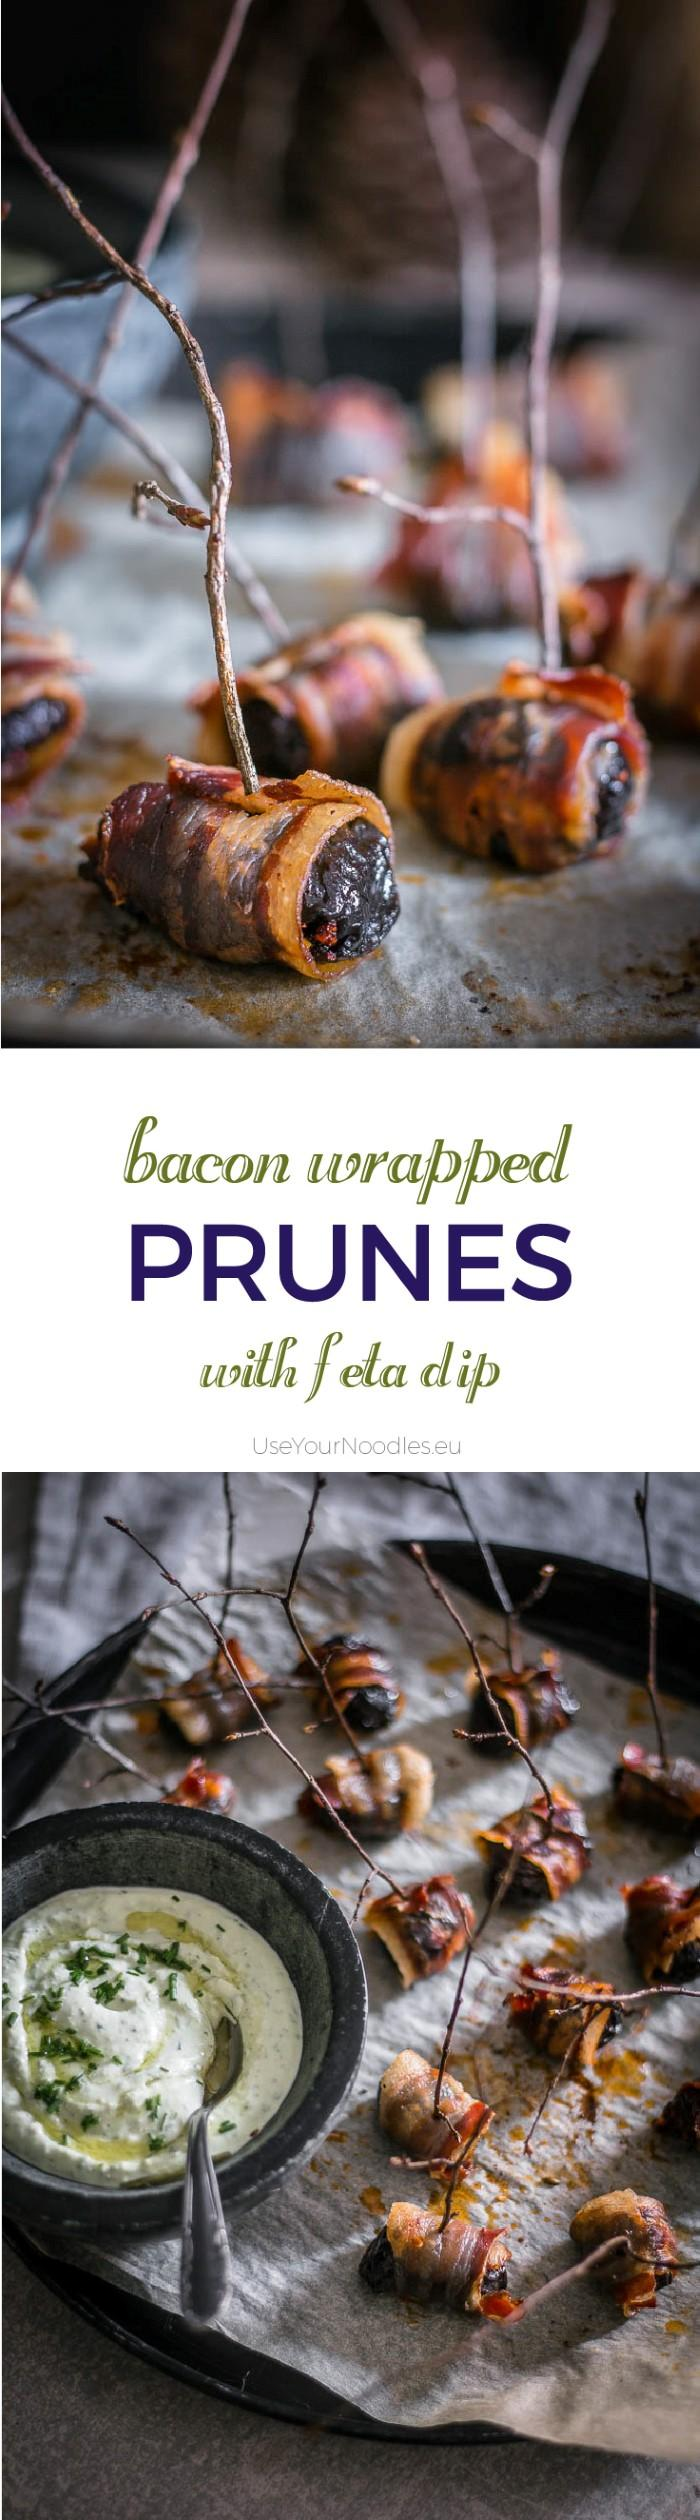 Indulgent finger food for the best party you'll ever throw, but not without these crispy bacon wrapped prunes and a decadent herbed feta dip! Click to find the whole recipe or pin and save for later!